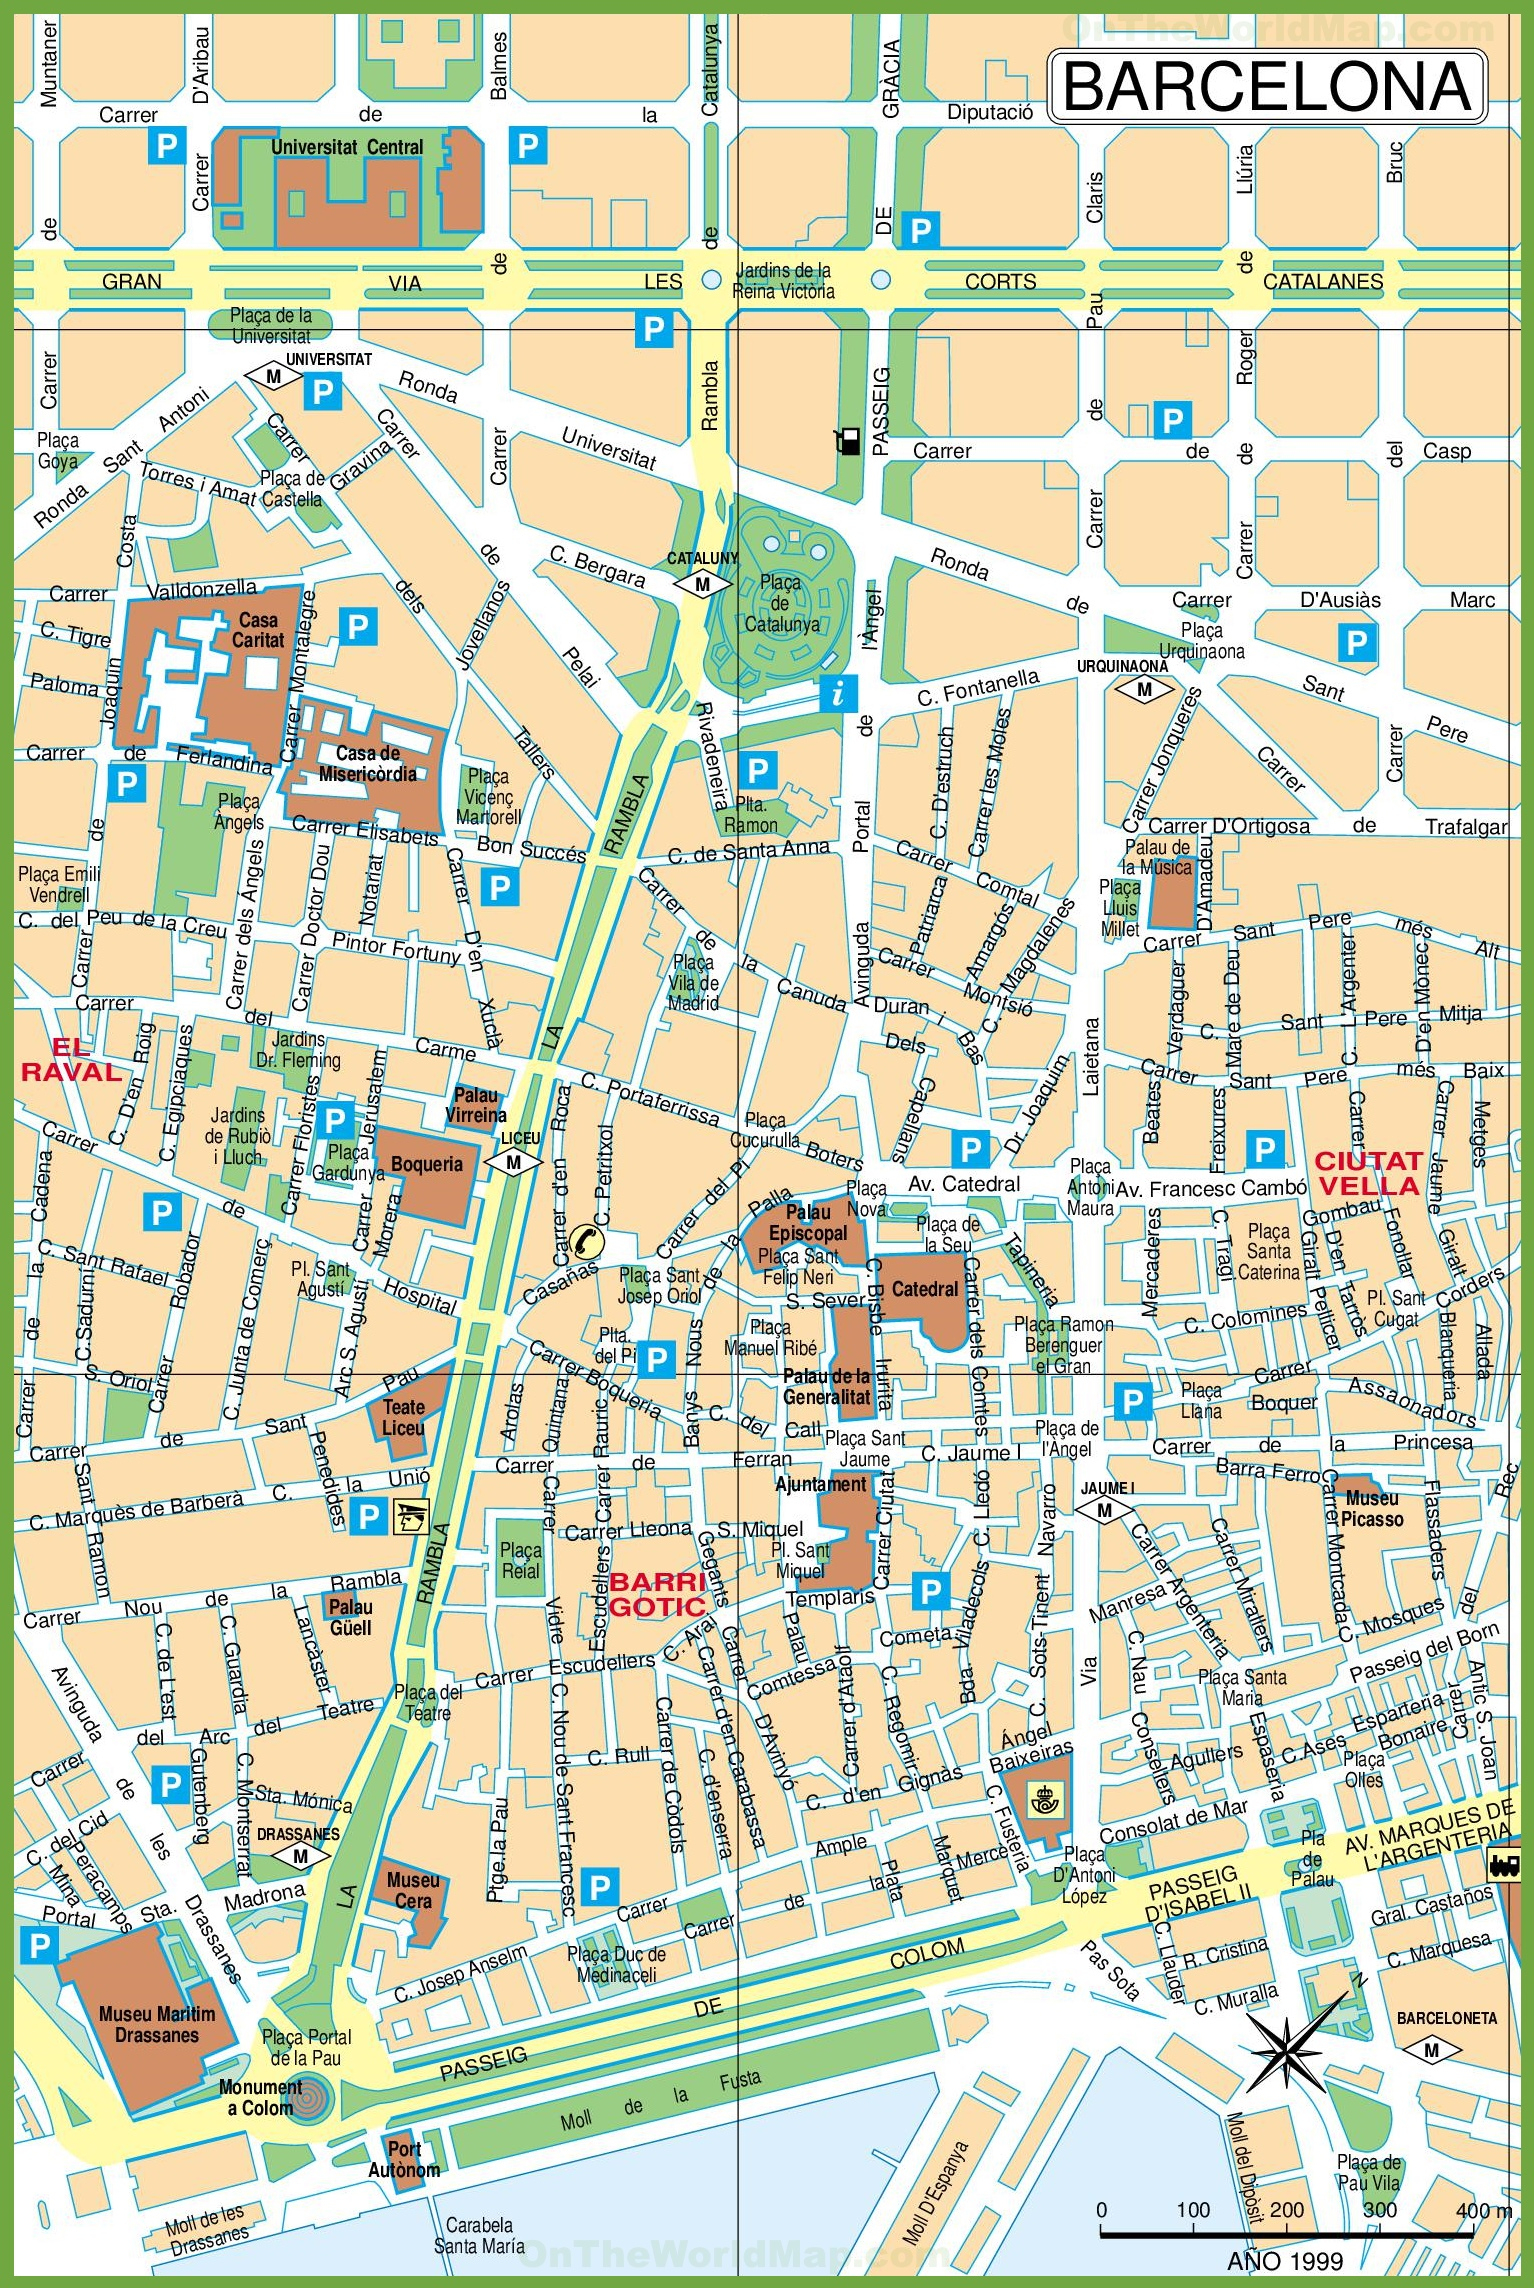 Barcelona City Center Map - Barcelona Street Map Printable